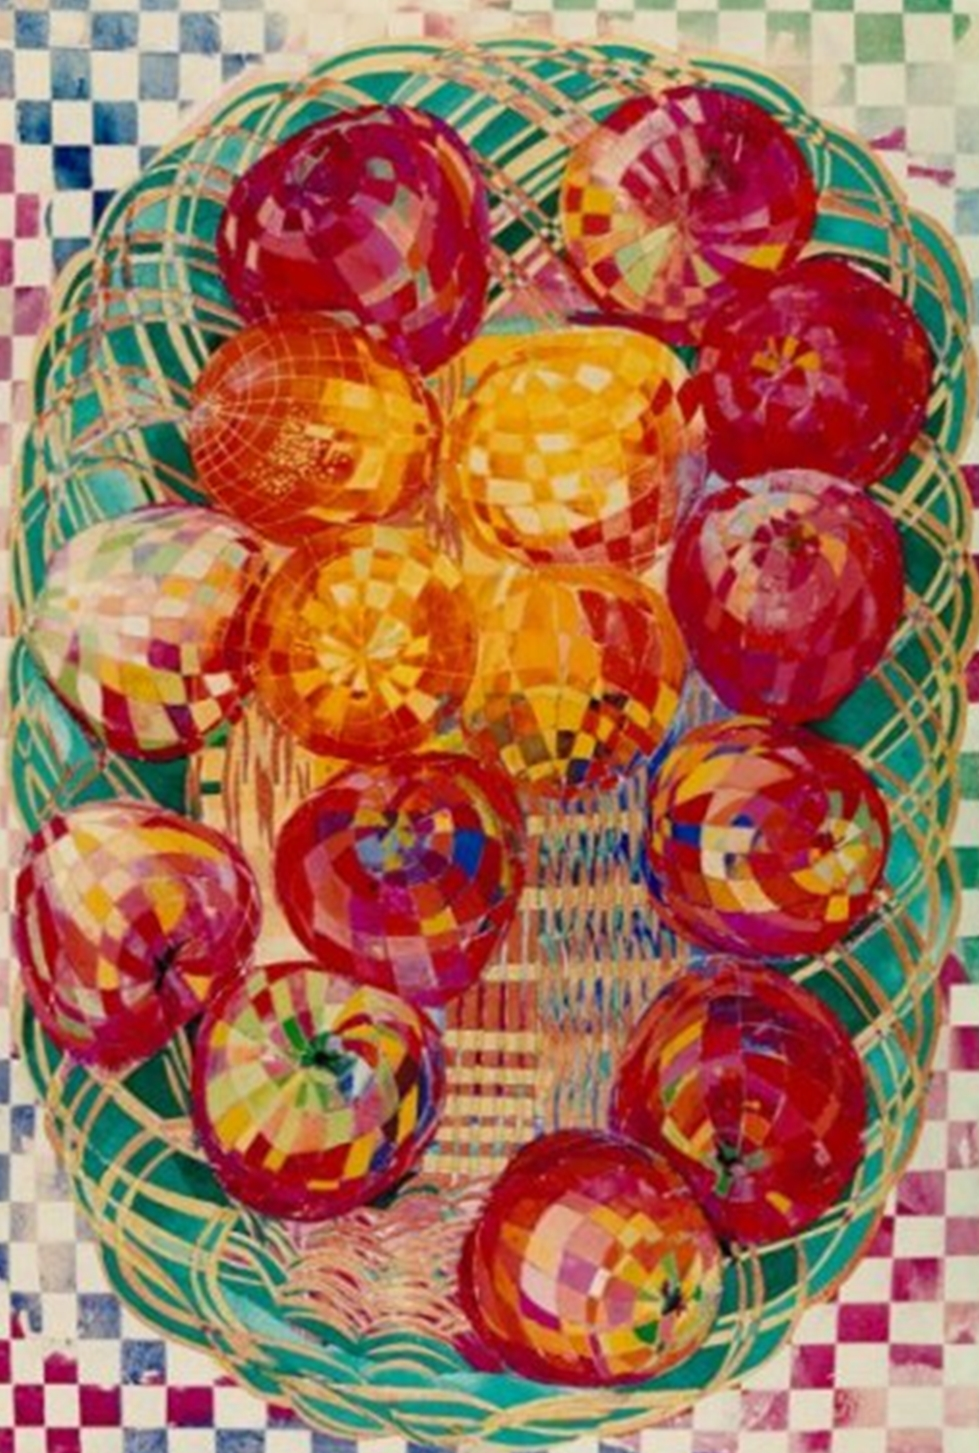 """Red Apples"" Rumyanka Bozhkova Naturmort Painting"